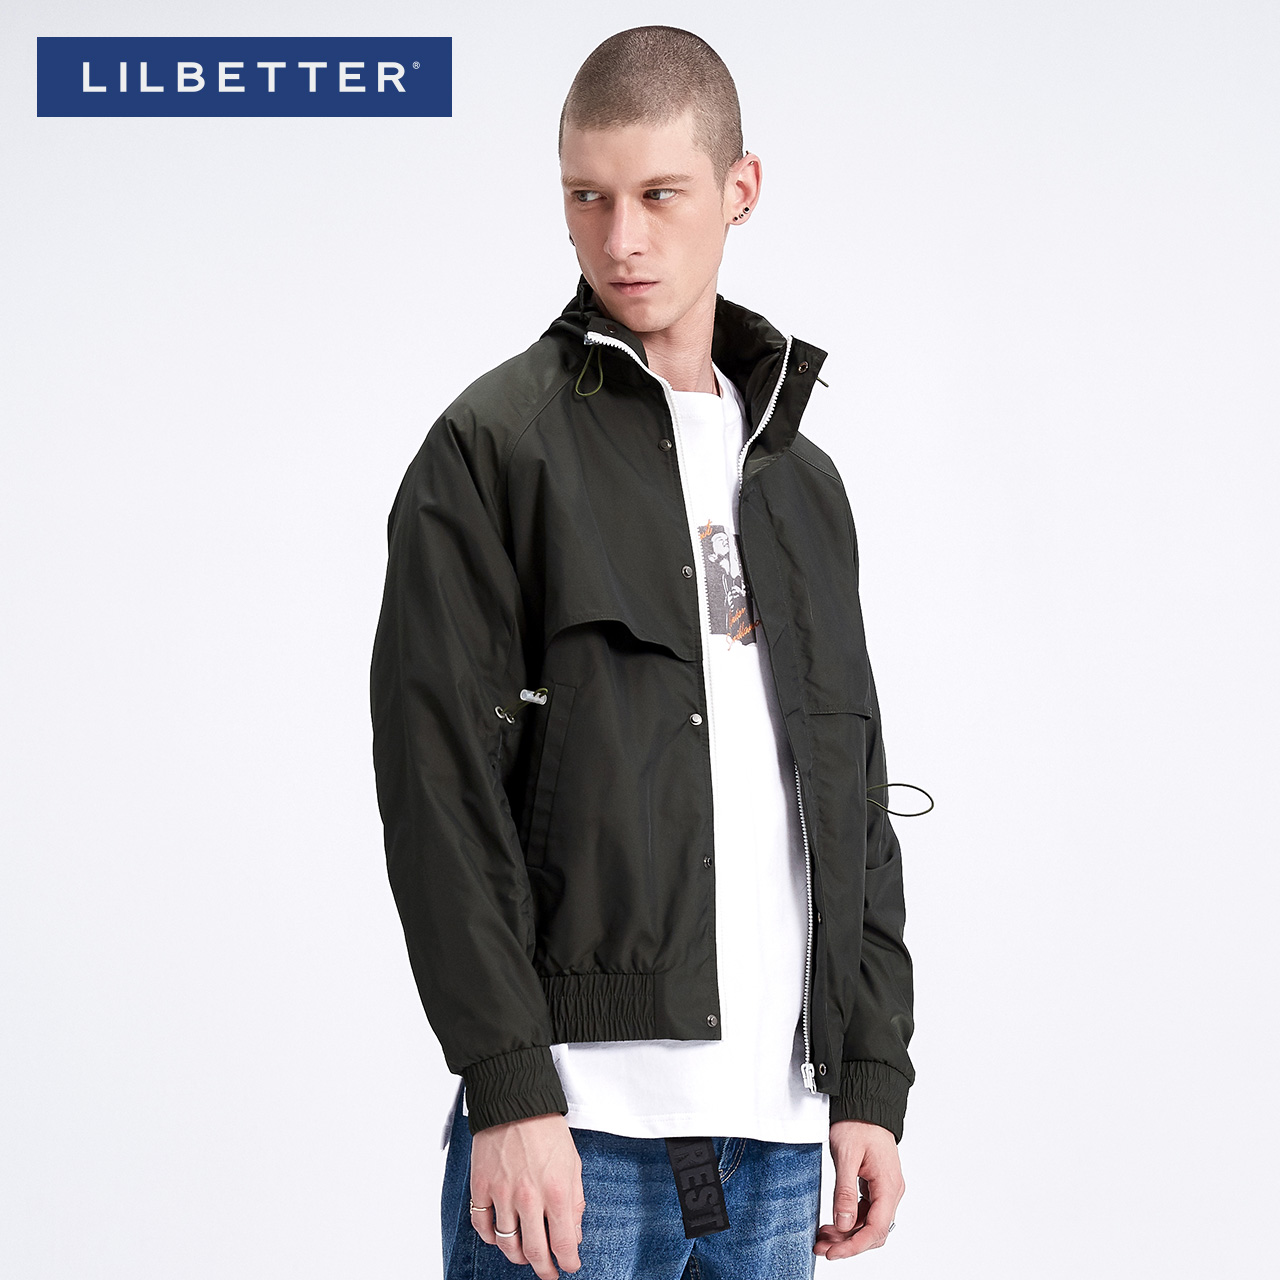 Lilbetter Men's coat spring tide brand handsome turtleneck coat hip-hop loose Japanese casual jacket man